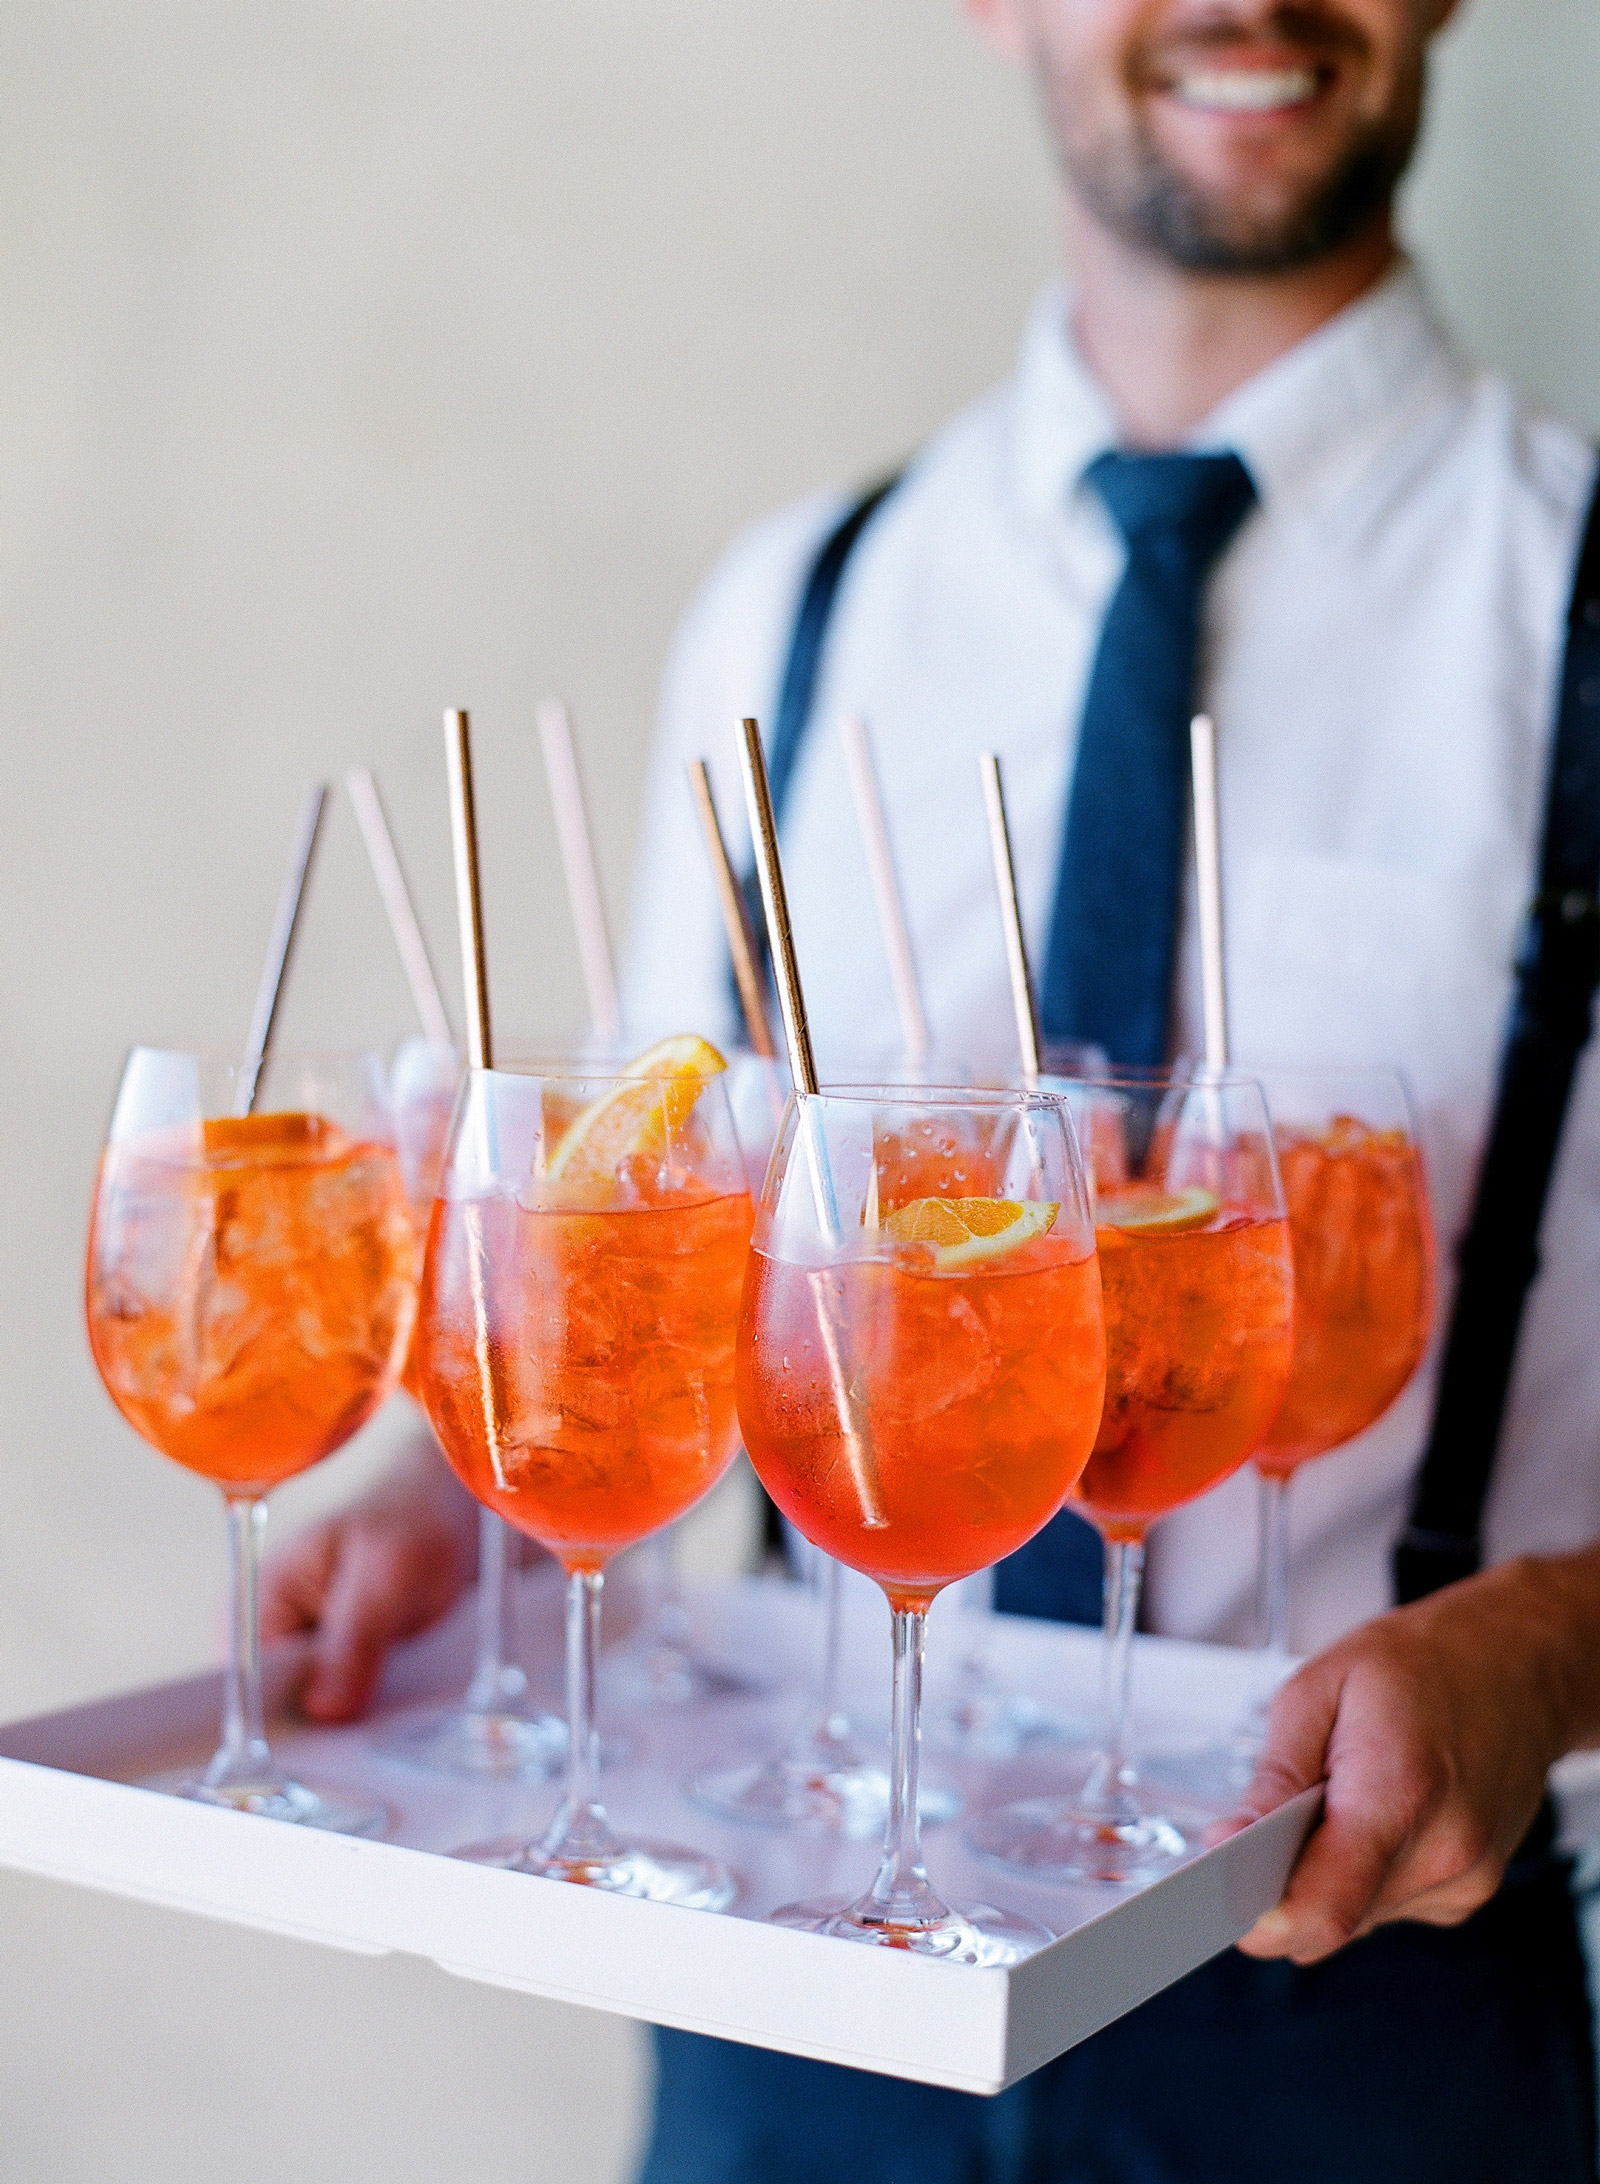 man carrying tray of aperol-spritz